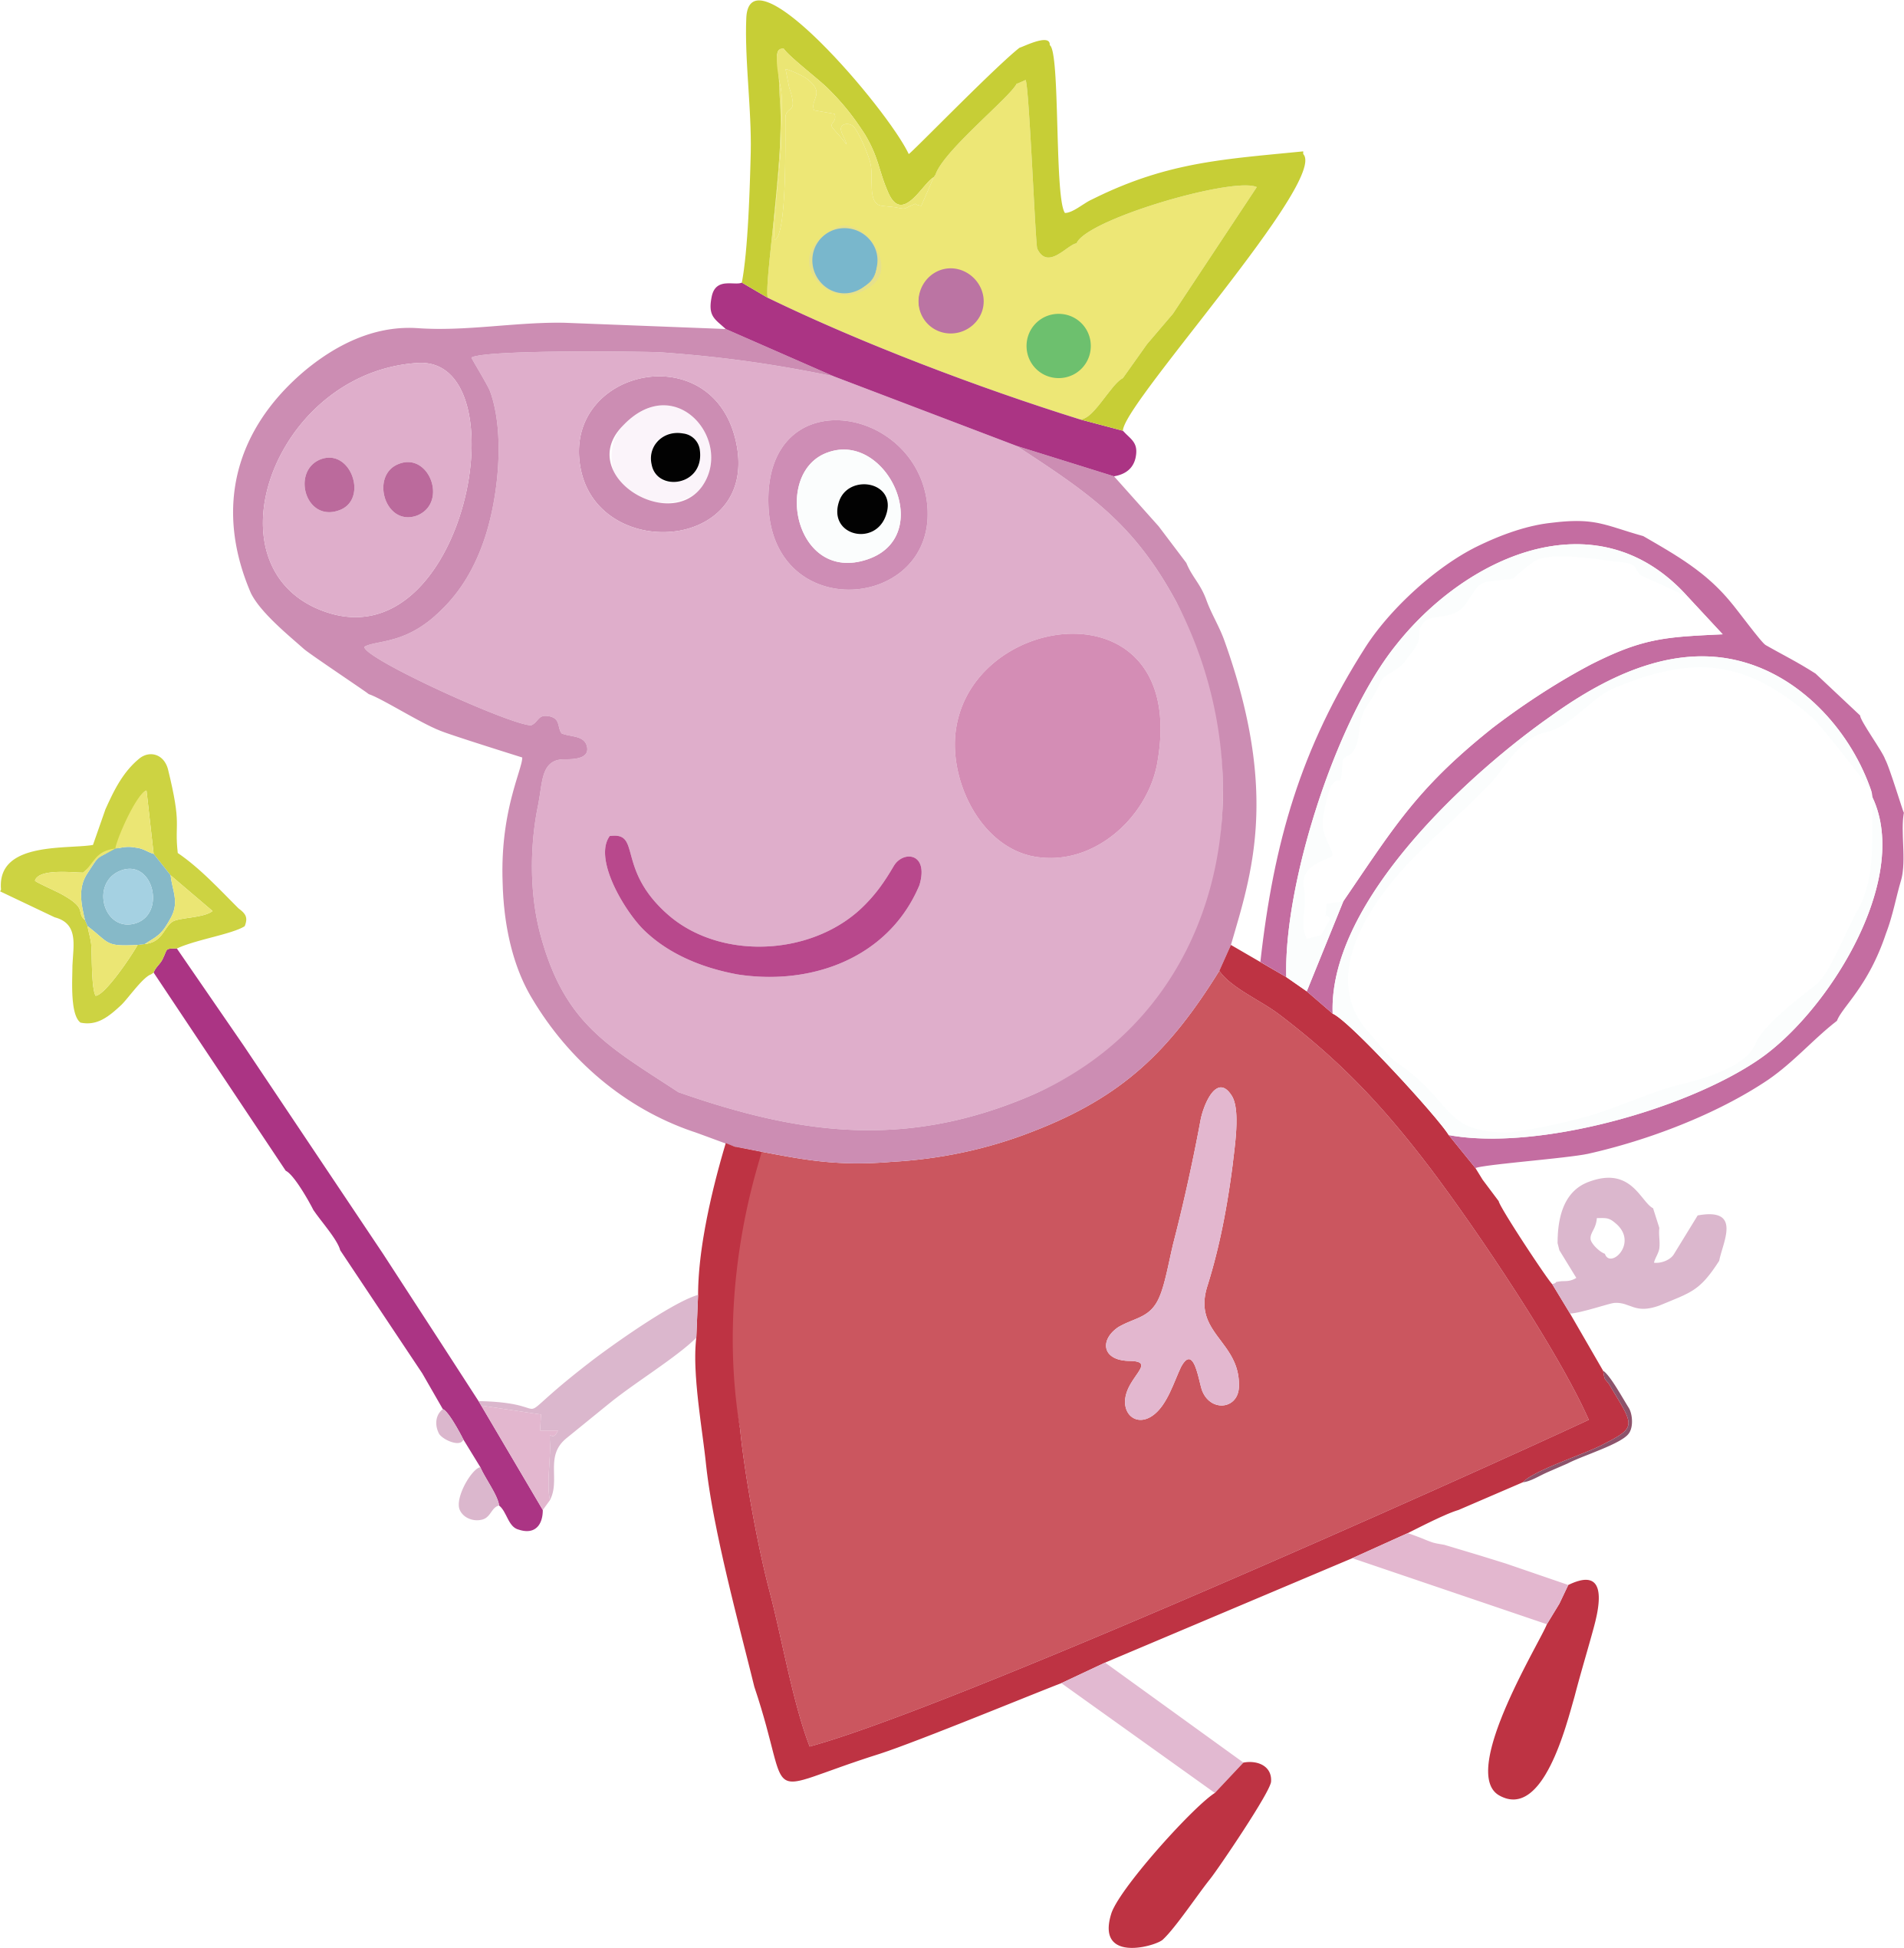 Peppa Pig Princess Transparent Png Clipart Free Download Ywd